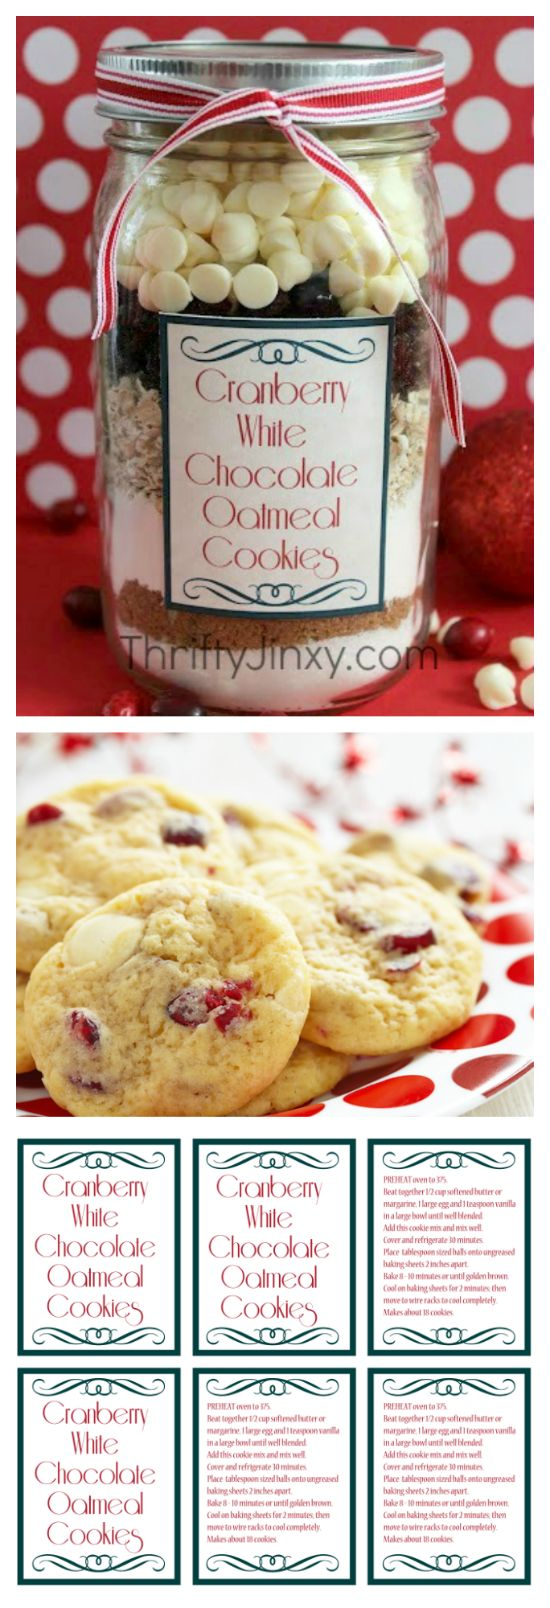 Cranberry White Chocolate Oatmeal Cookie in a Jar Recipe with FREE Printable Labels - A fun gift idea!